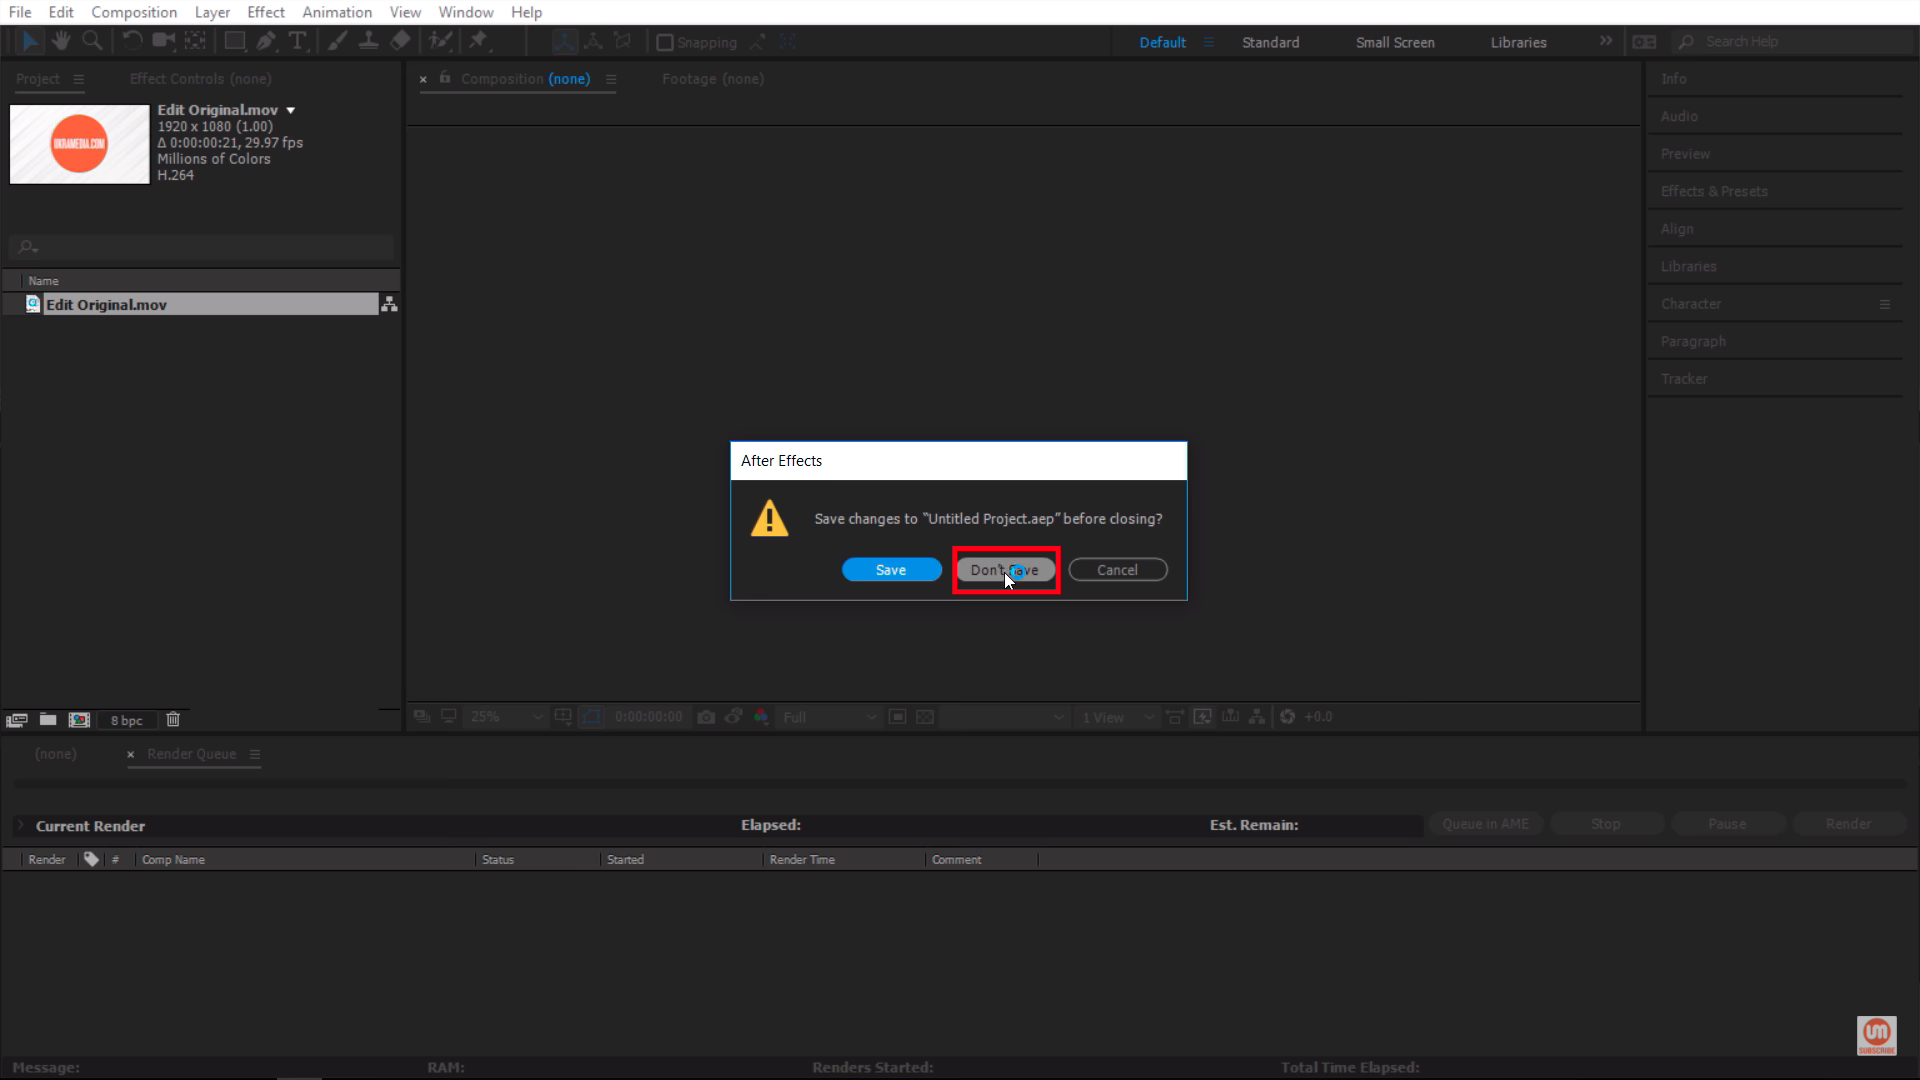 Don't Save Project File After Effects